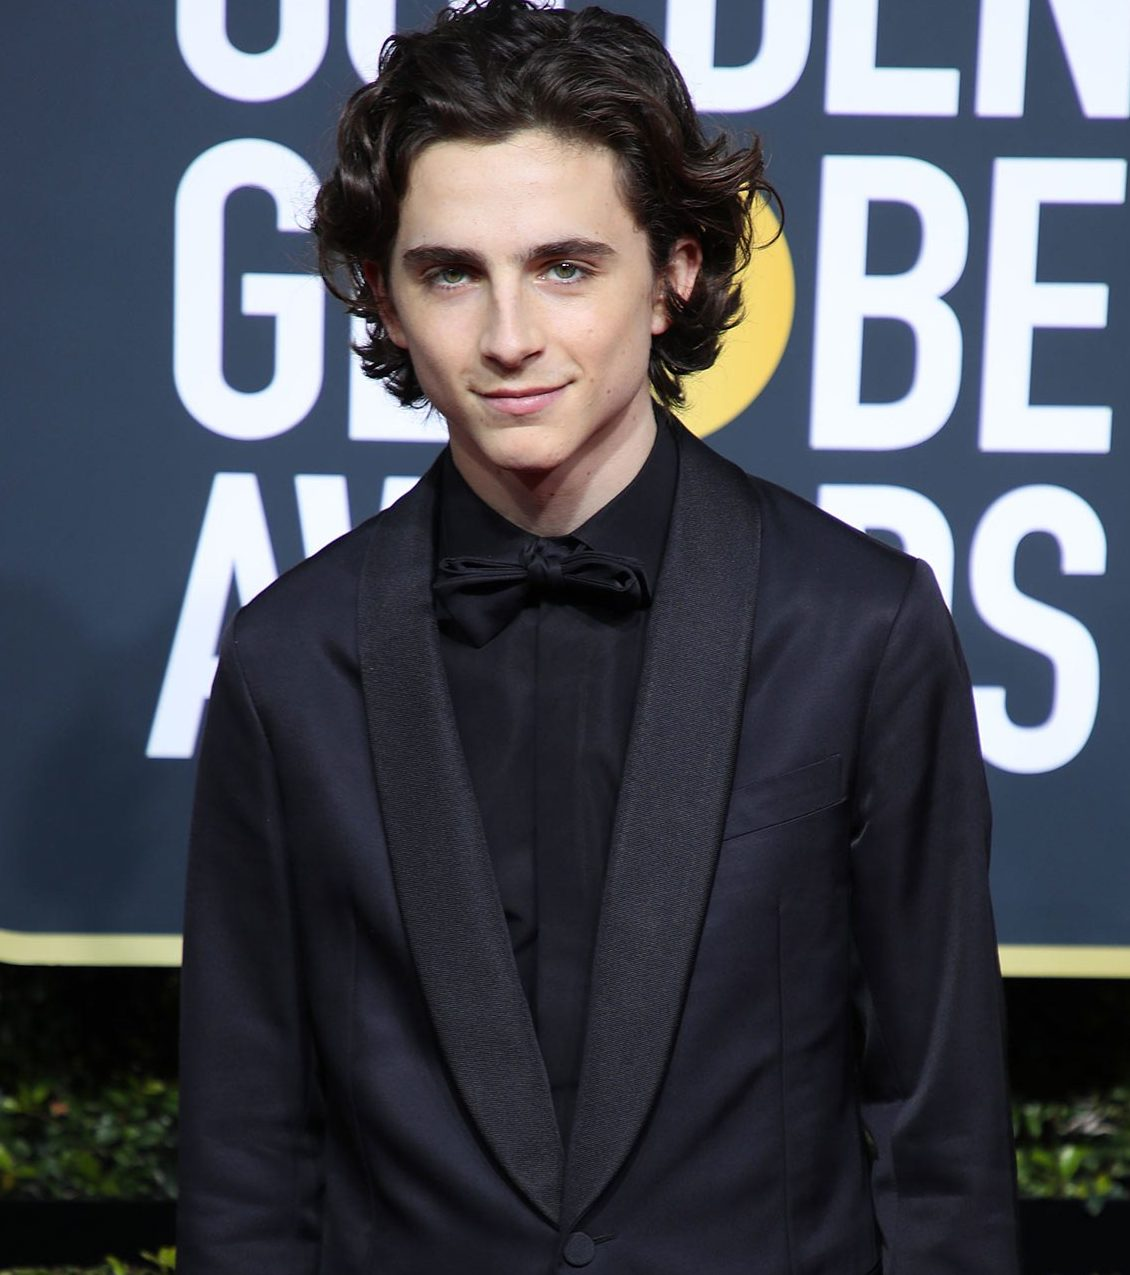 00 story timothee chalamet e1580127672201 20 Actors Who Would Kill It As The Next James Bond